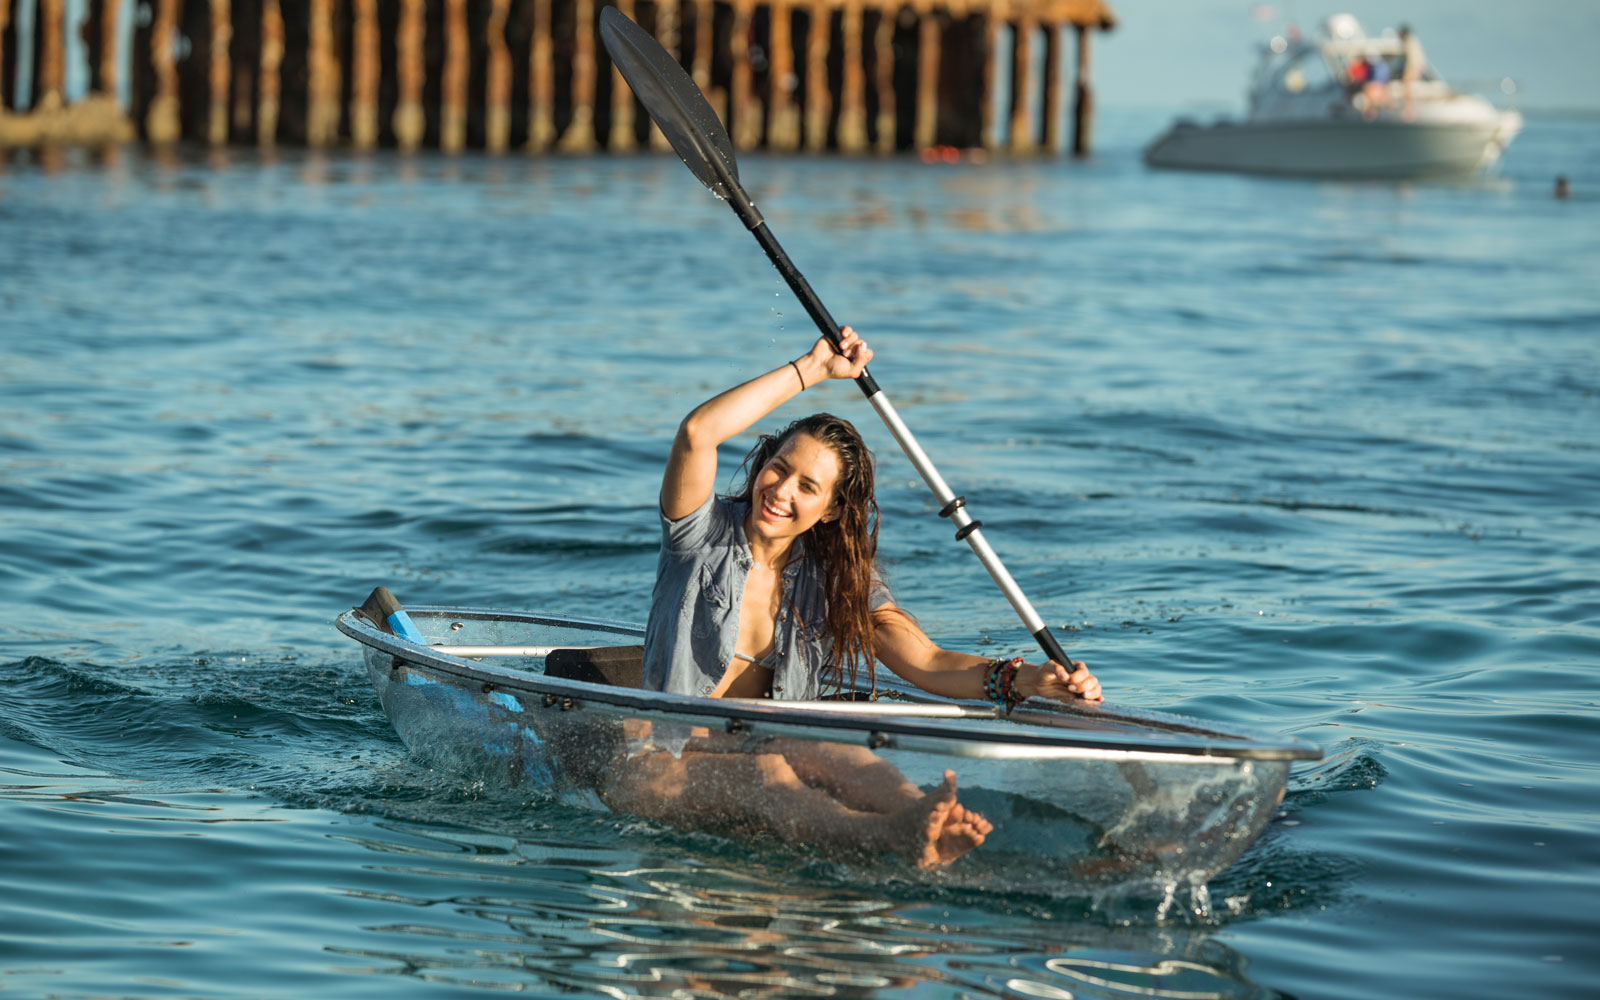 These Transparent Kayaks Give You Incredible Views of the Ocean While You Paddle